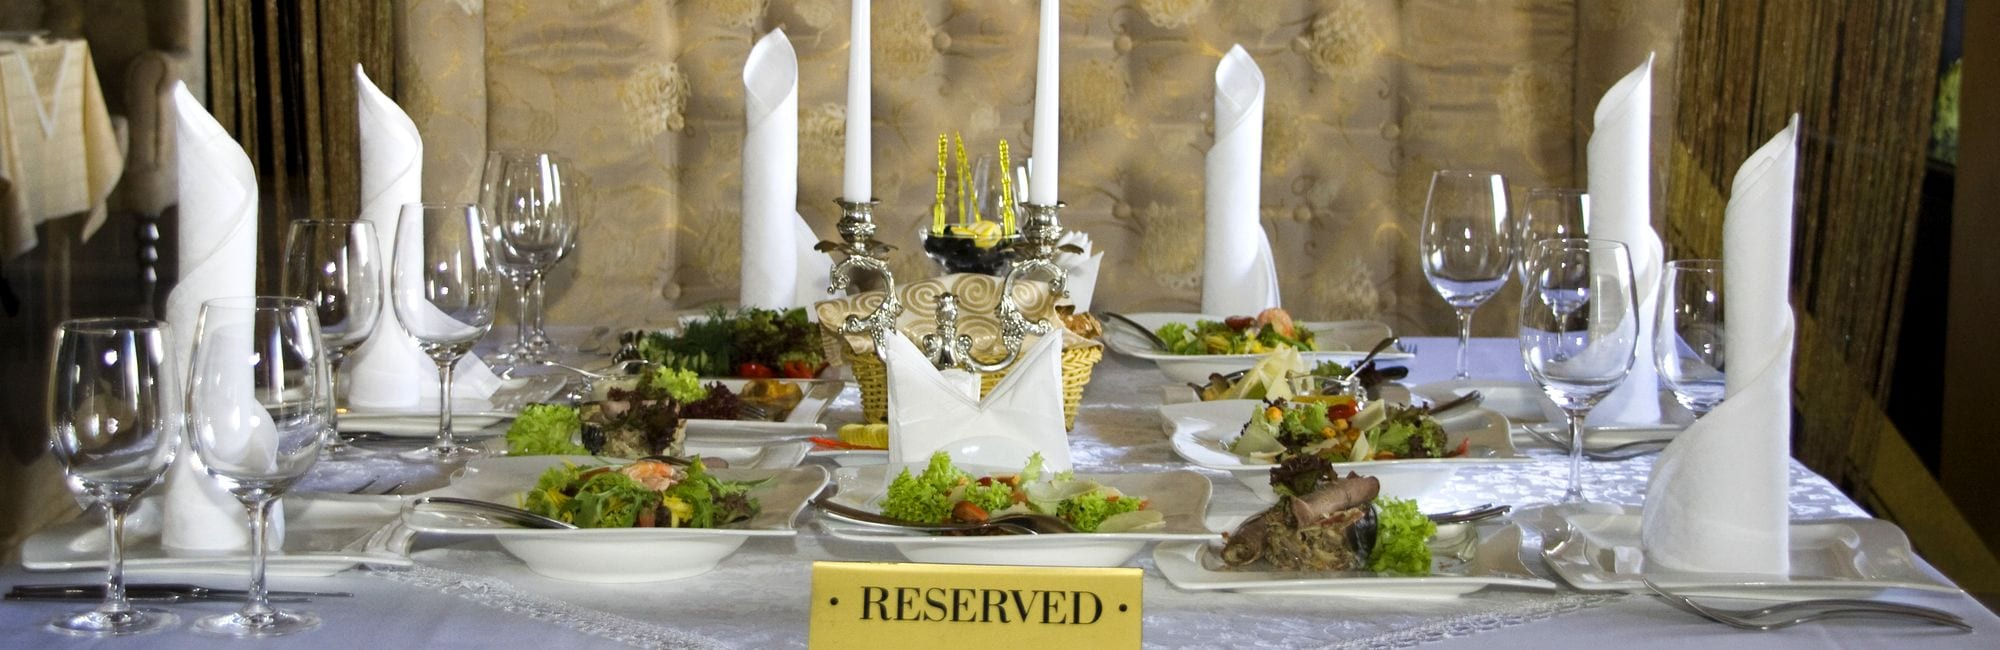 Reserved table in luxury restaurant